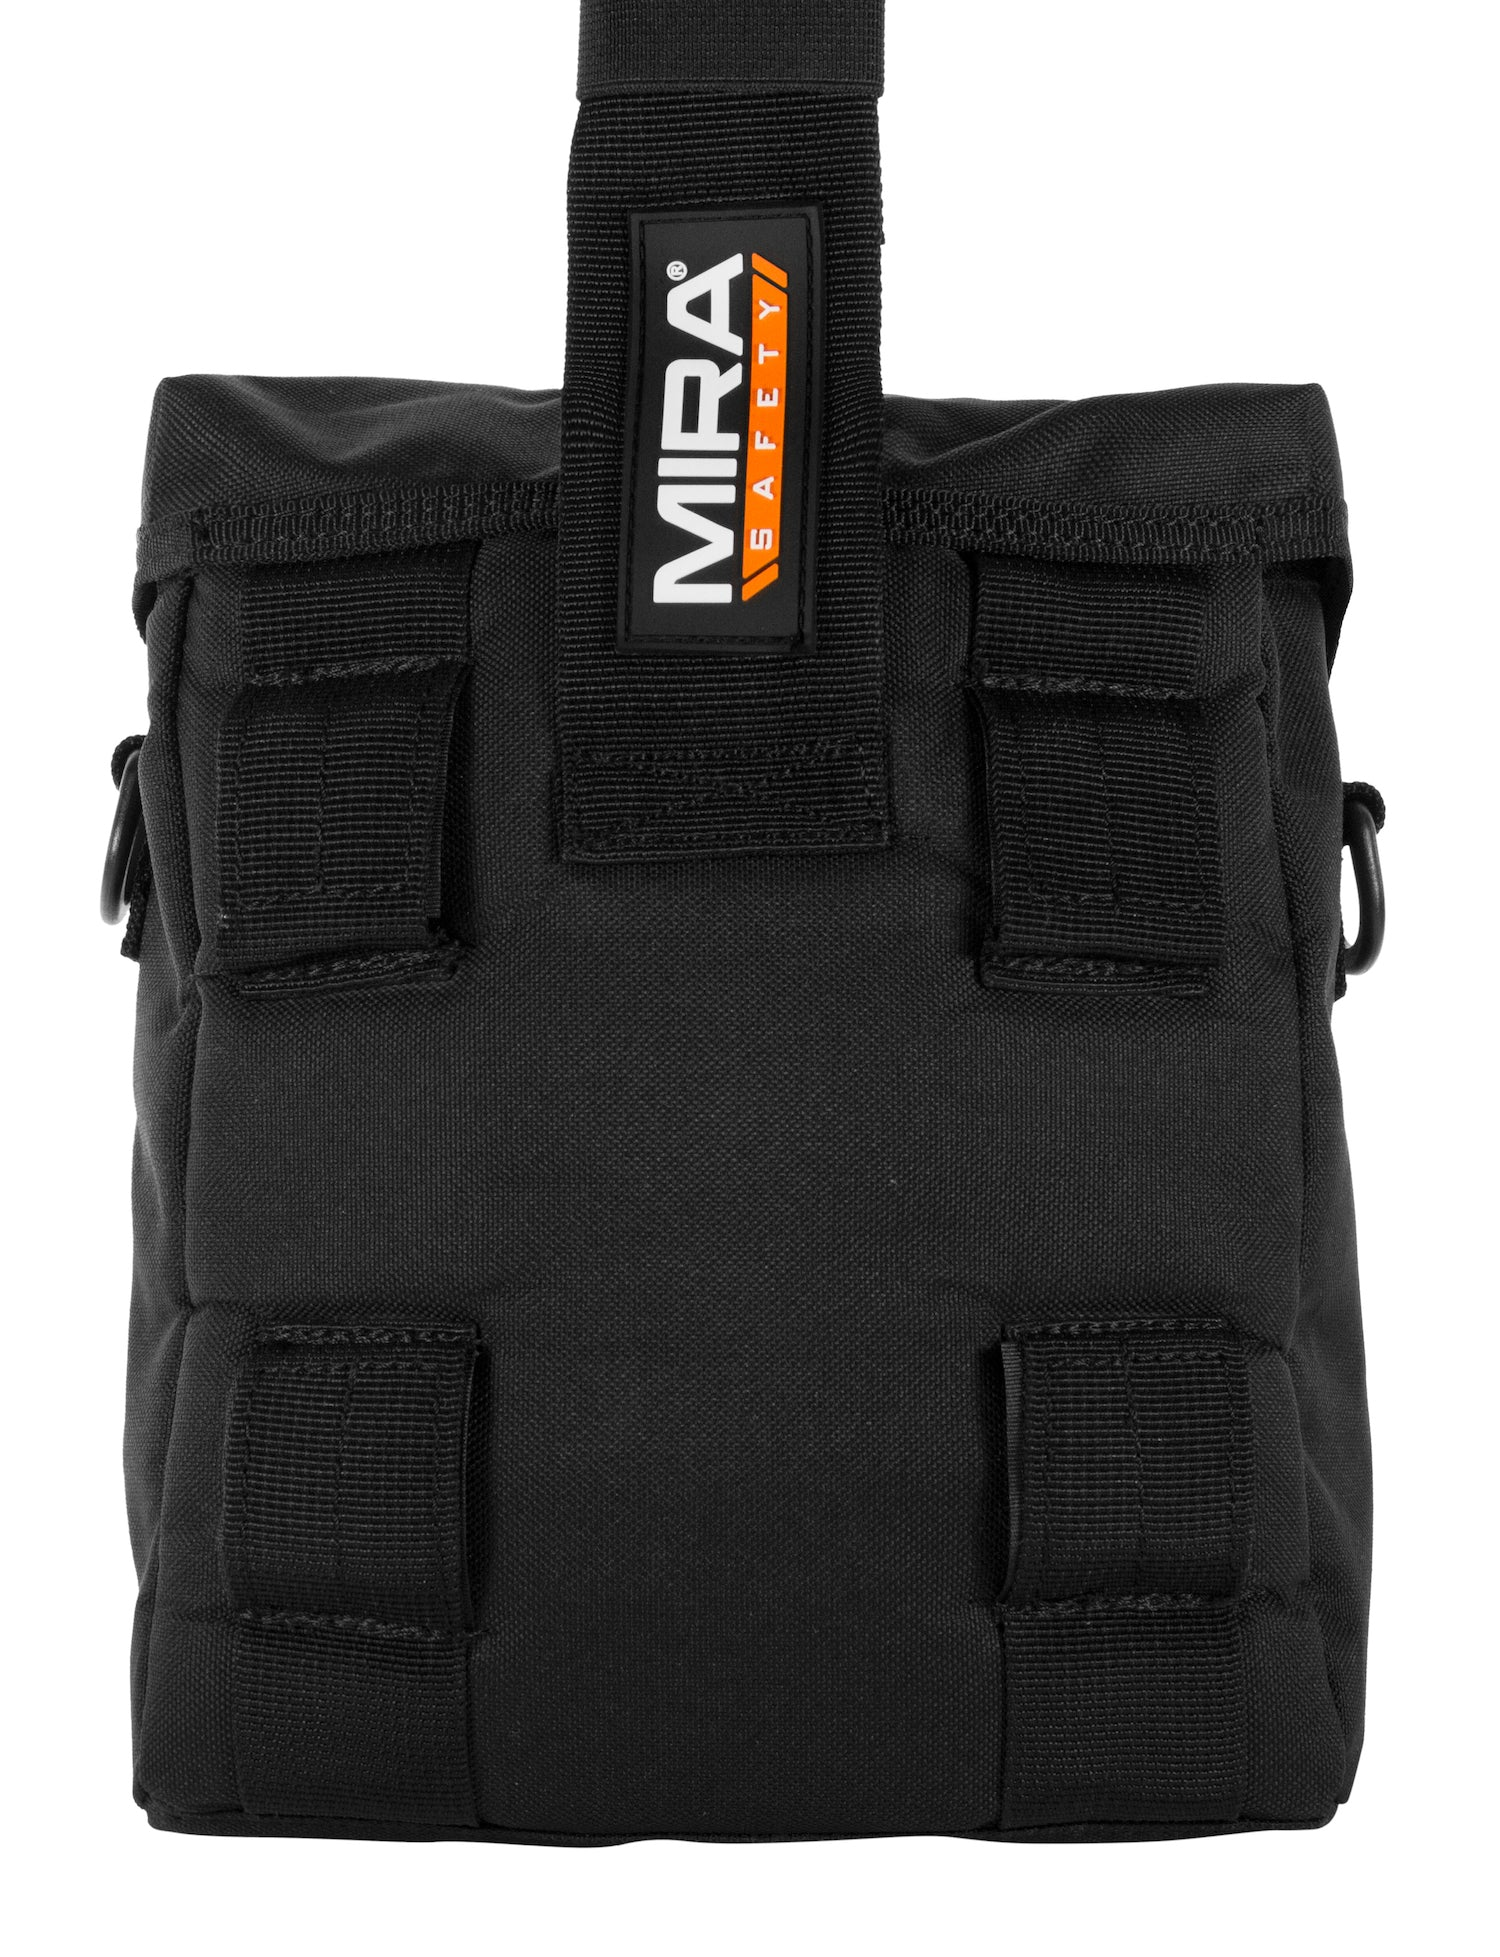 MIRA Safety gas mask pouch back view without straps